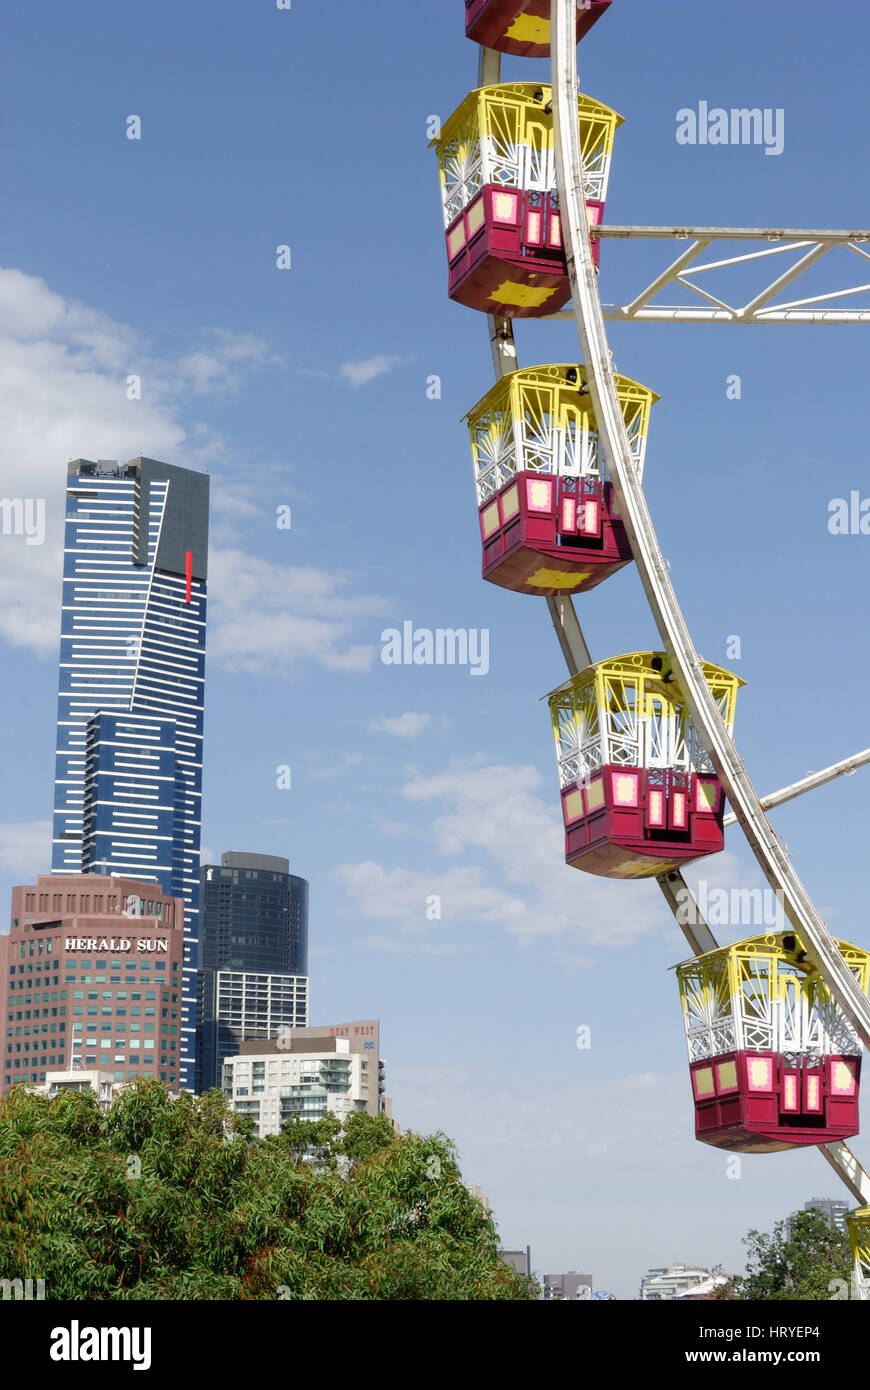 Big wheel at Birrarung Marr,Melbourne with the Eureka Building behind - Stock Image